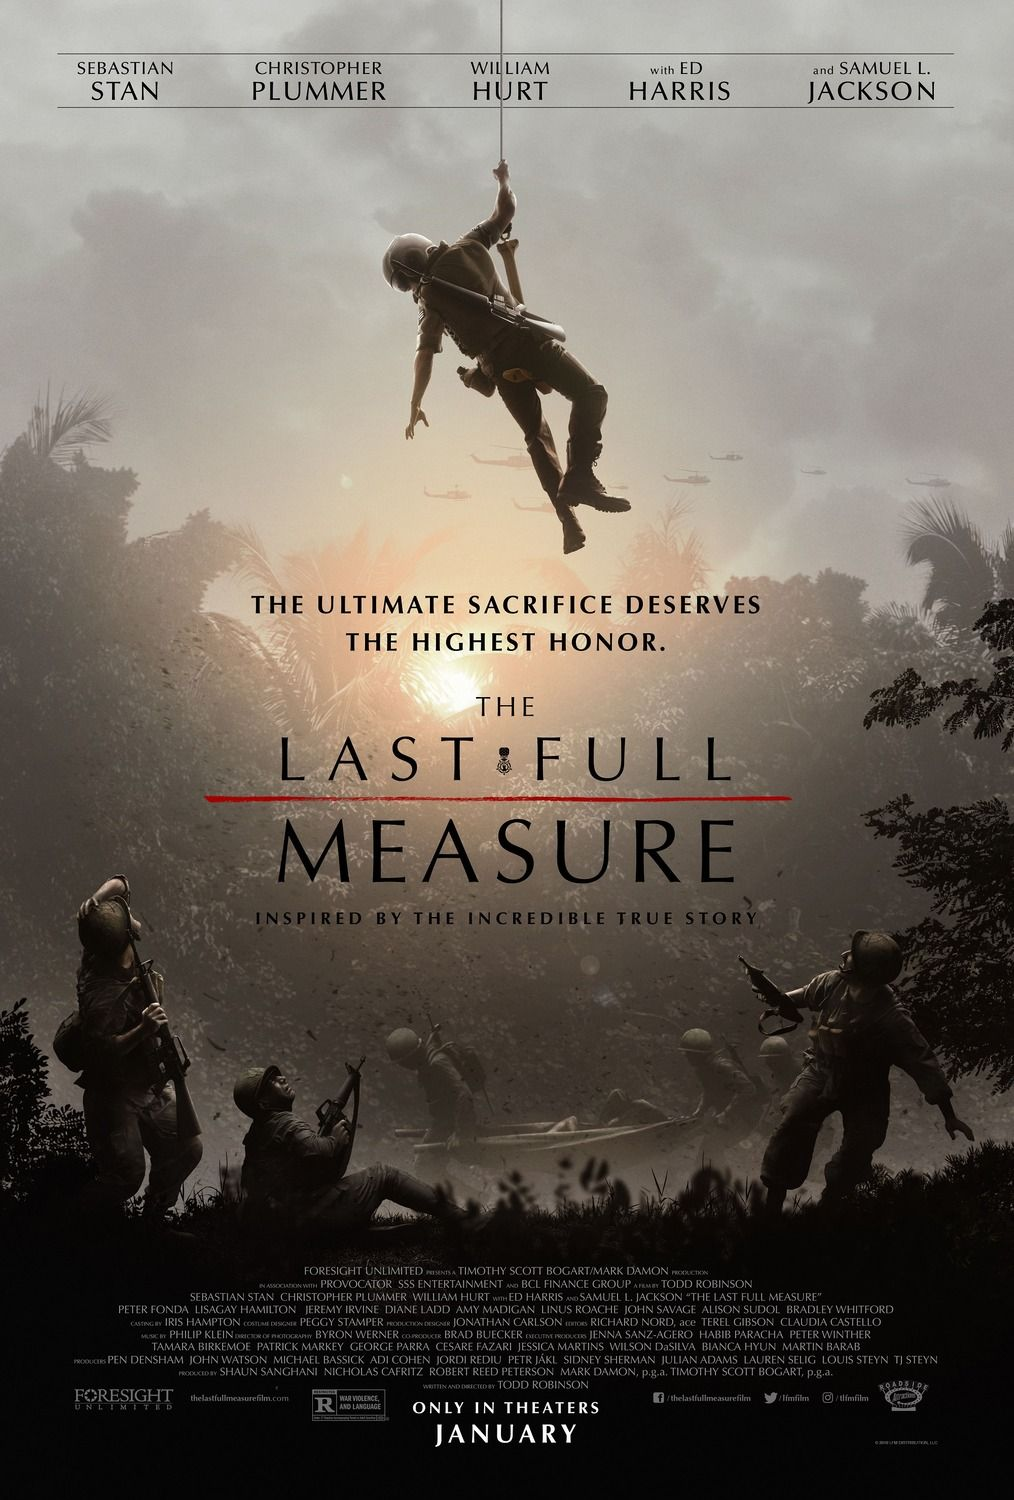 The Last Full Measure 4 Movie Clips And Poster Https Teaser Trailer Com Movie The Last Full Measure Free Movies Online Movies Online Full Movies Online